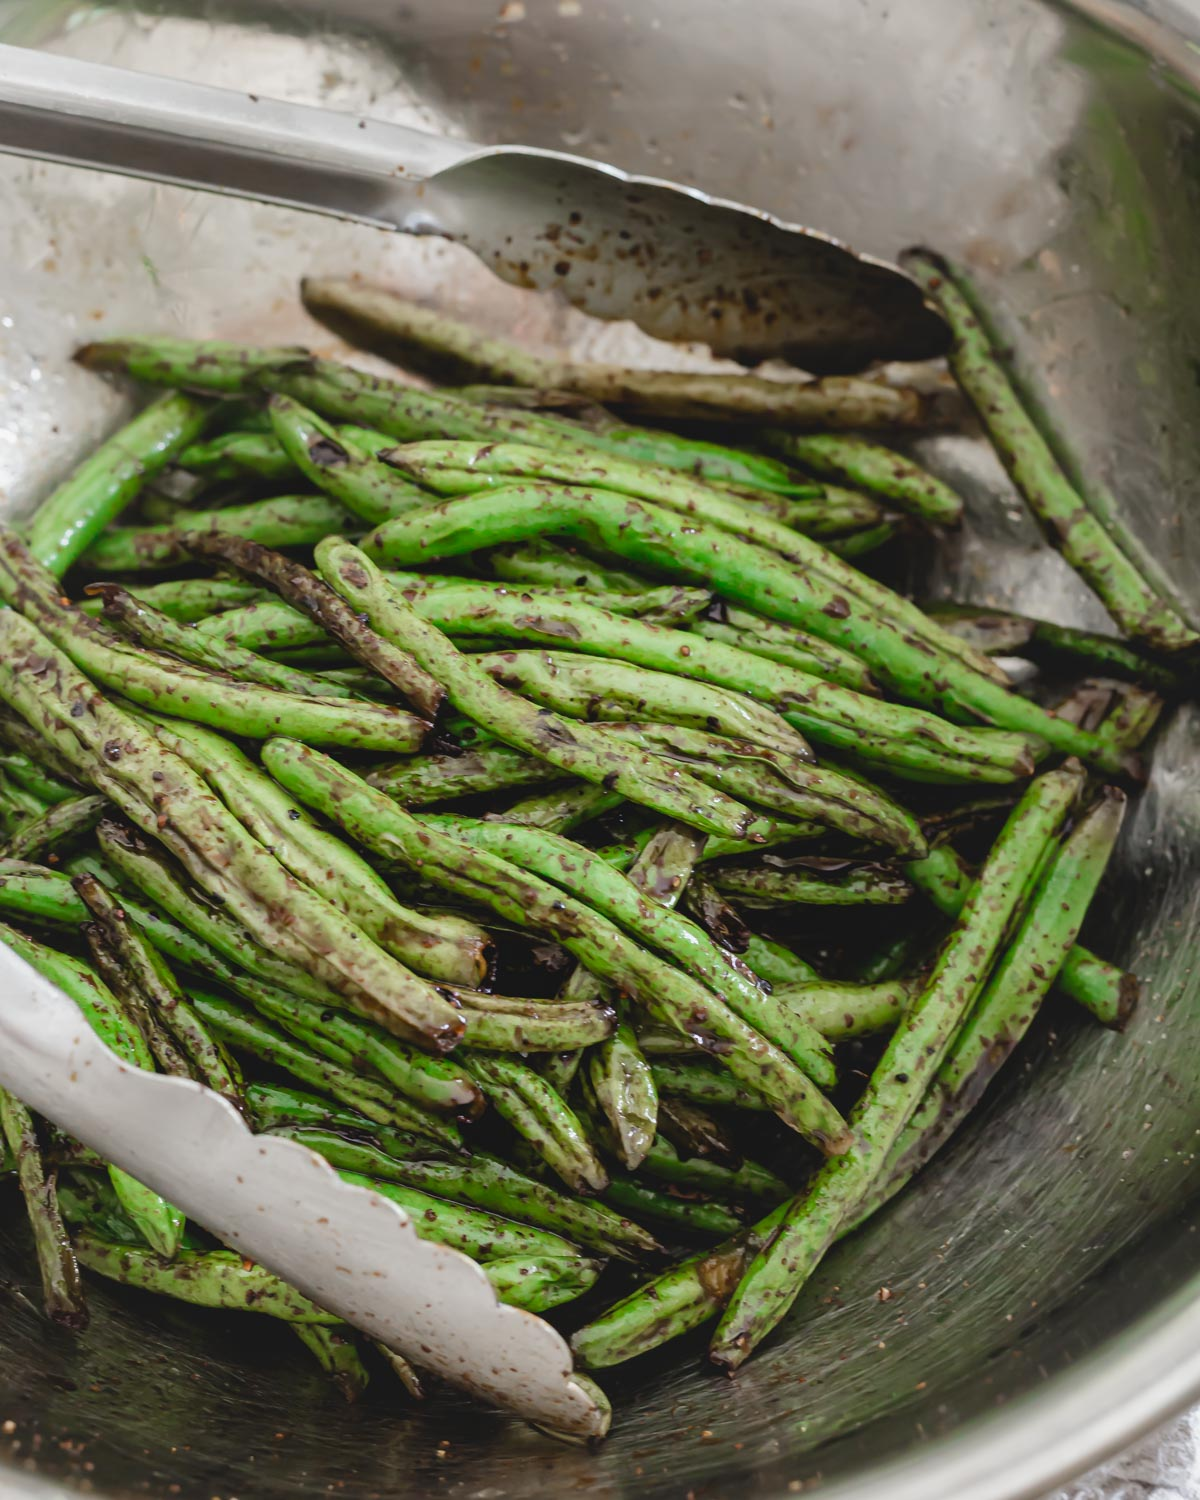 Garlic soy grilled green beans in a bowl with metal tongs.